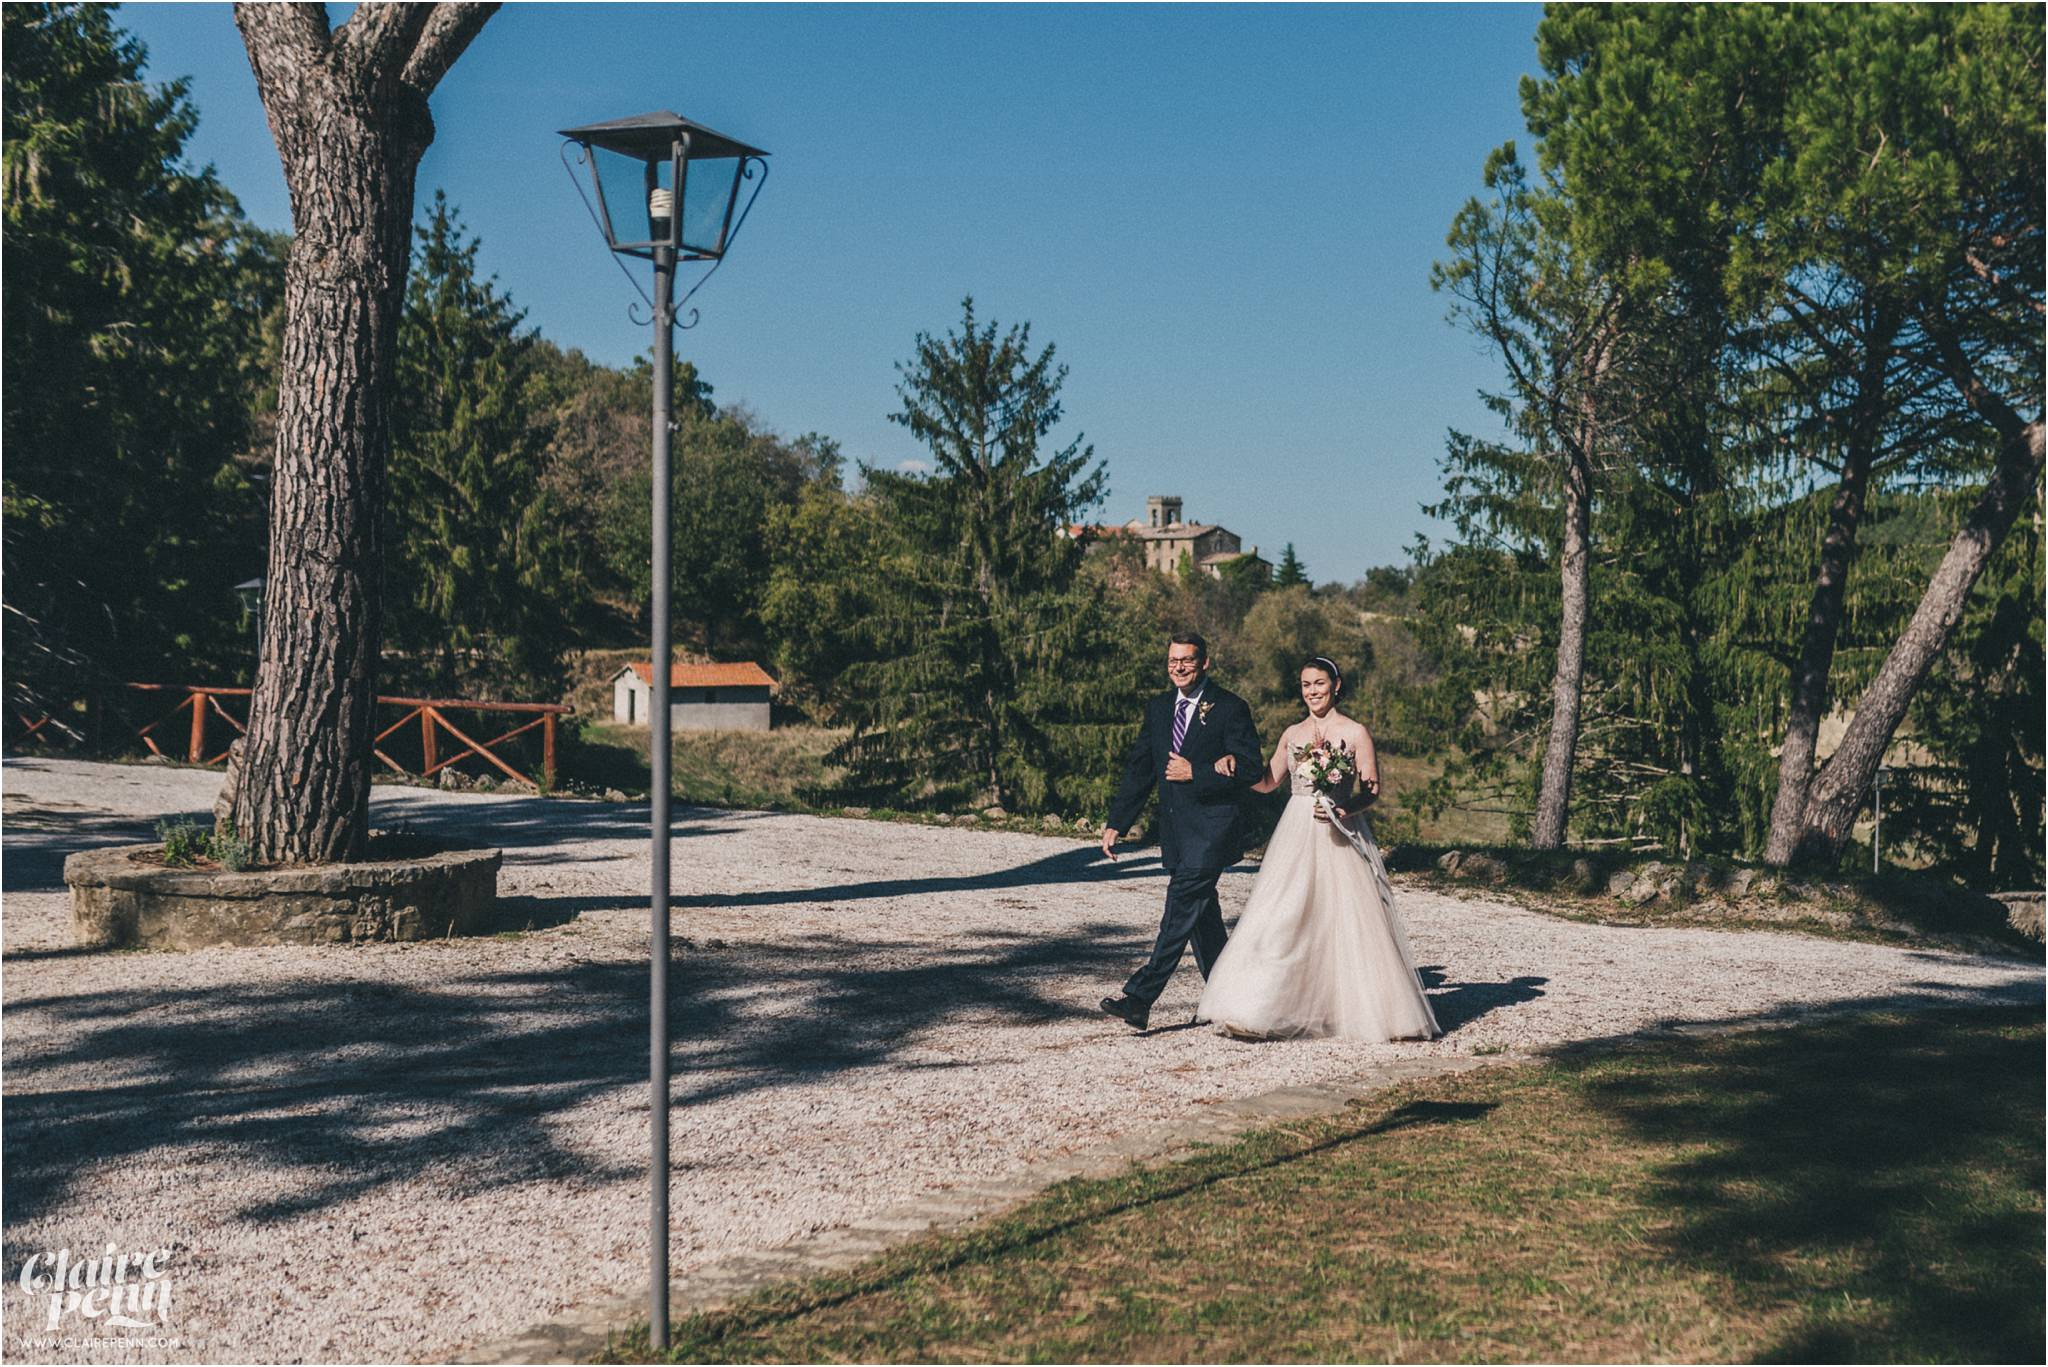 Umbria destination wedding Italy Casa Bruciata 00029.jpg